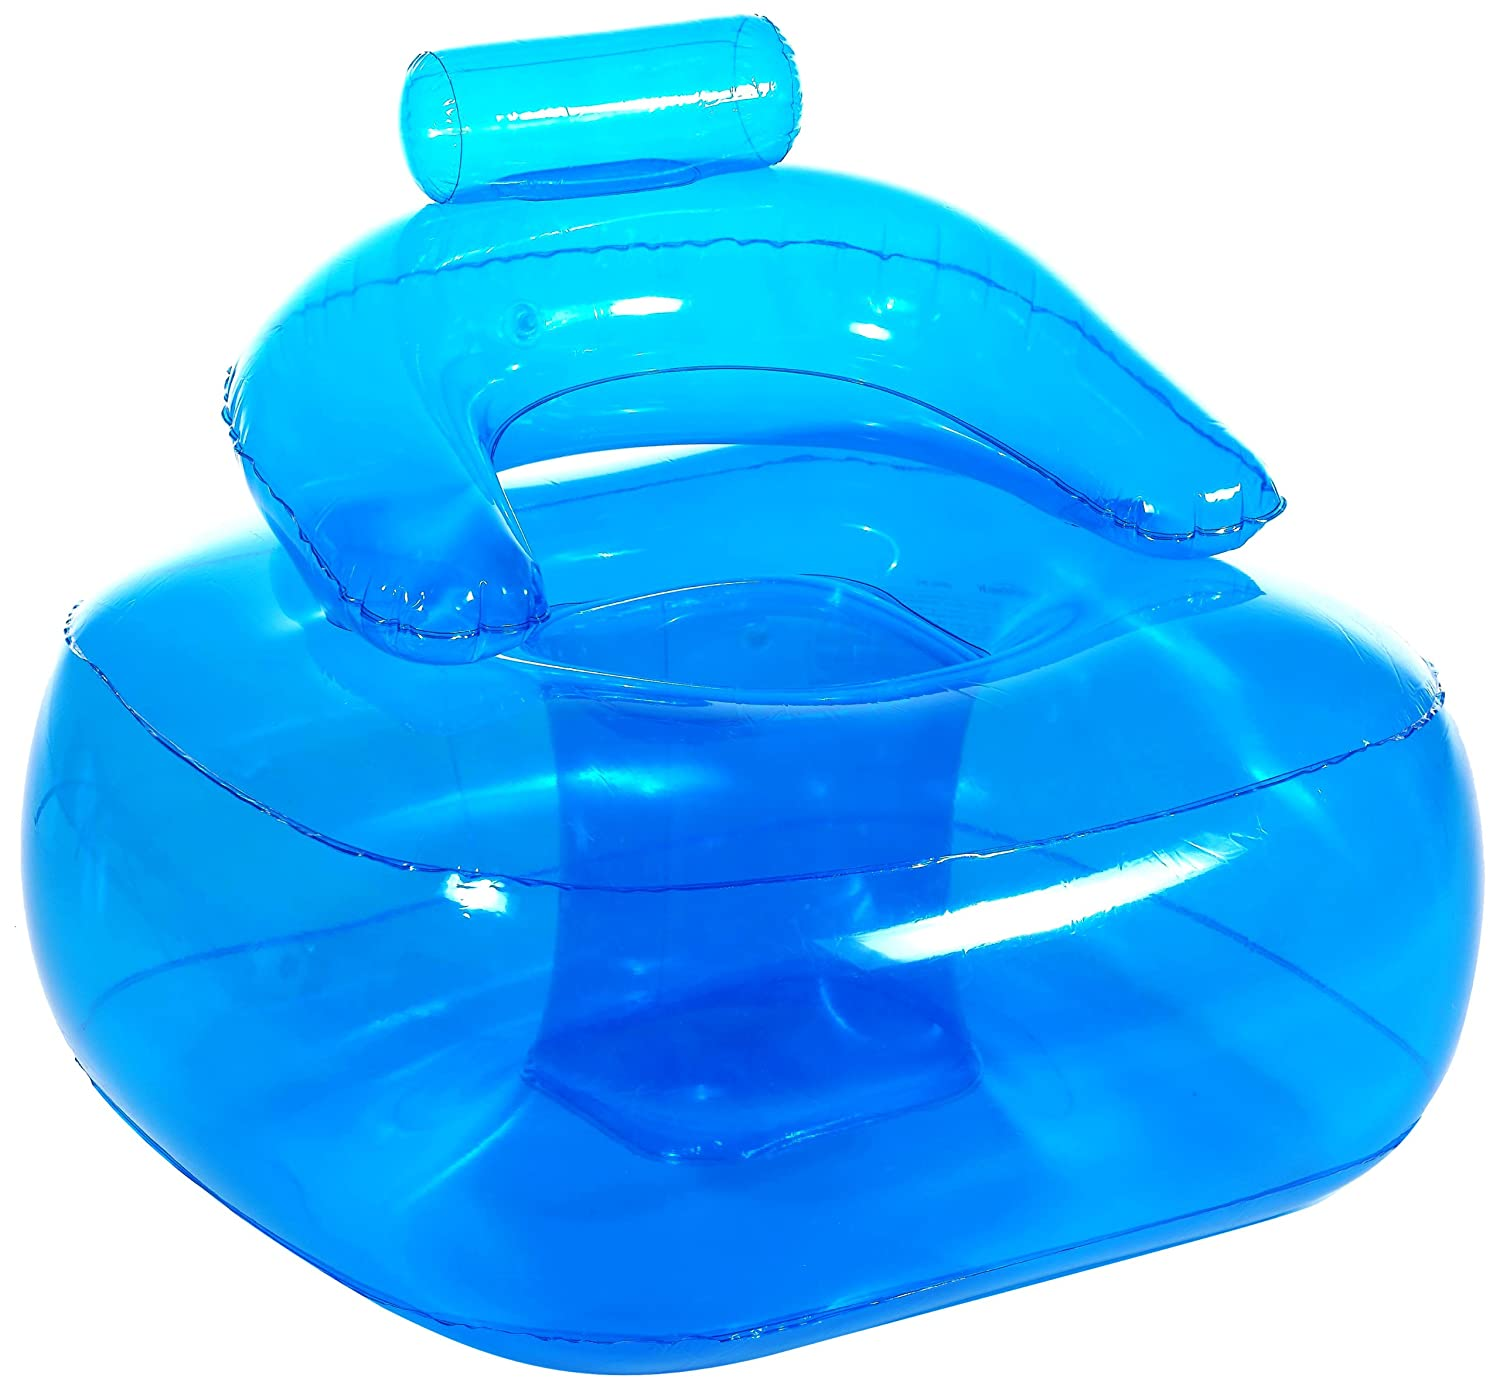 Inflatable furniture 90s - There